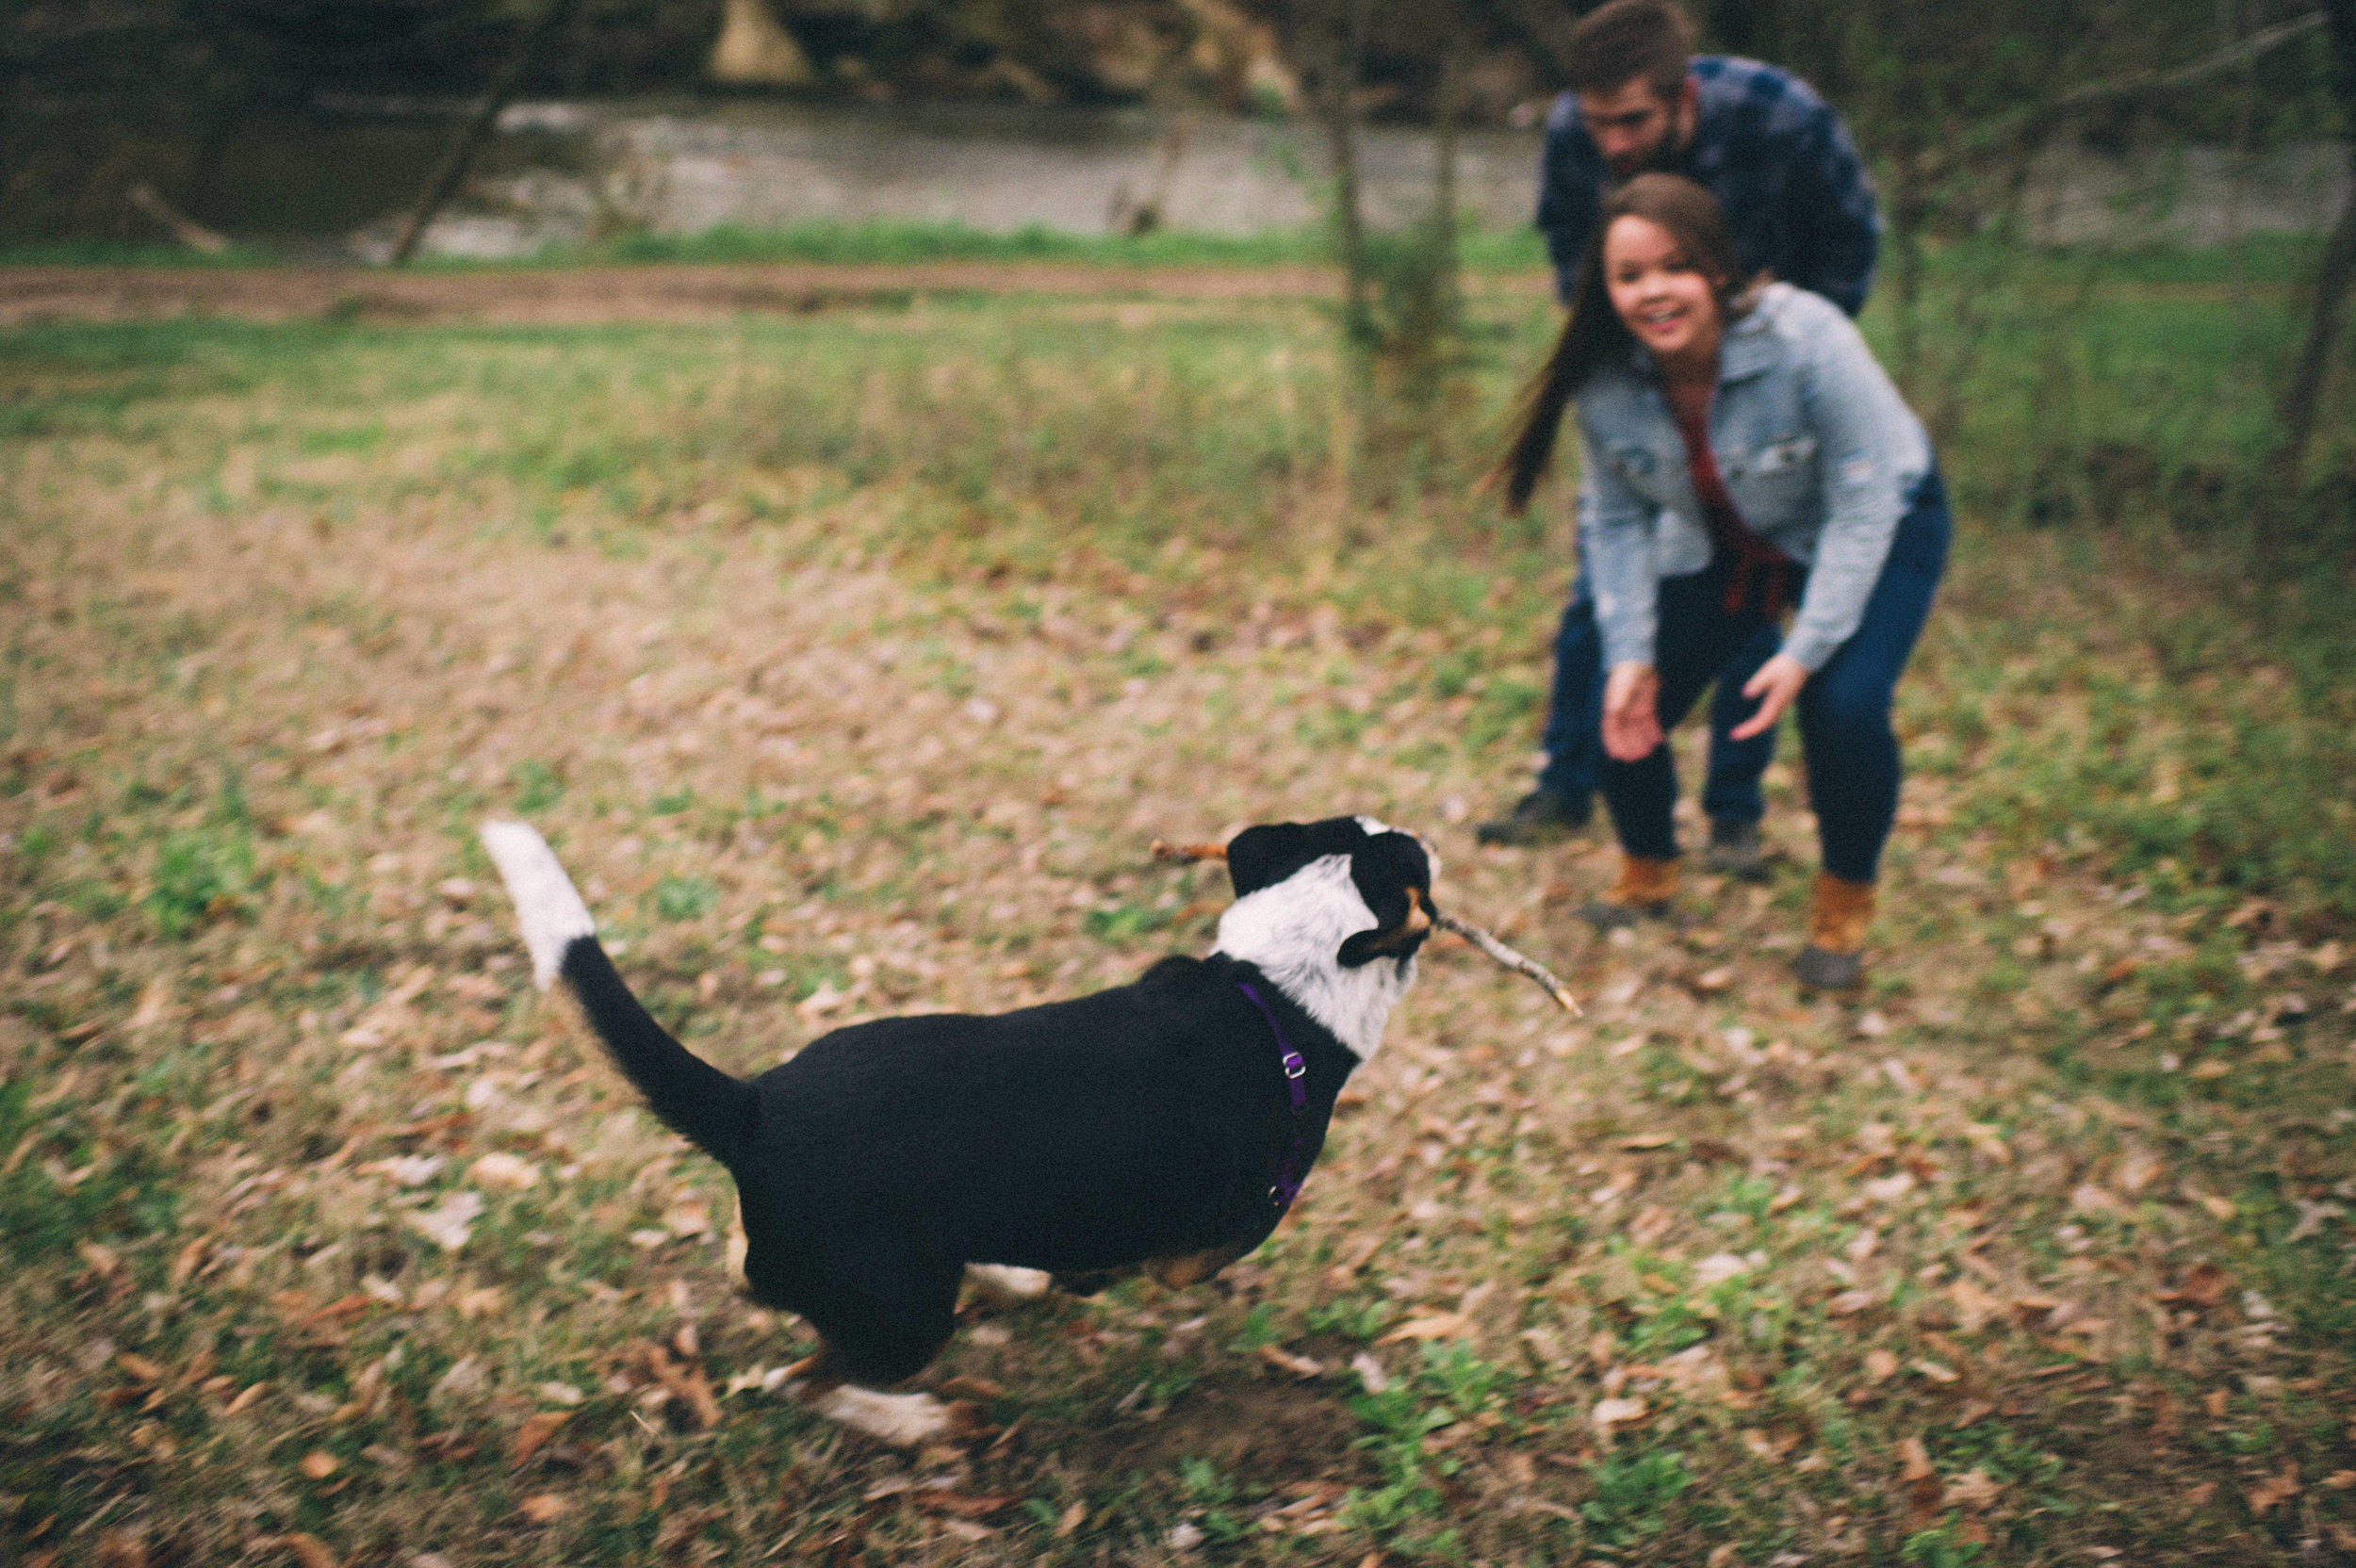 Maggie + Corey Adventurous Engagement Session- Sarah Katherine Davis Photography - Cherokee Park Hike - Louisville Kentucky - Playing with Dogs